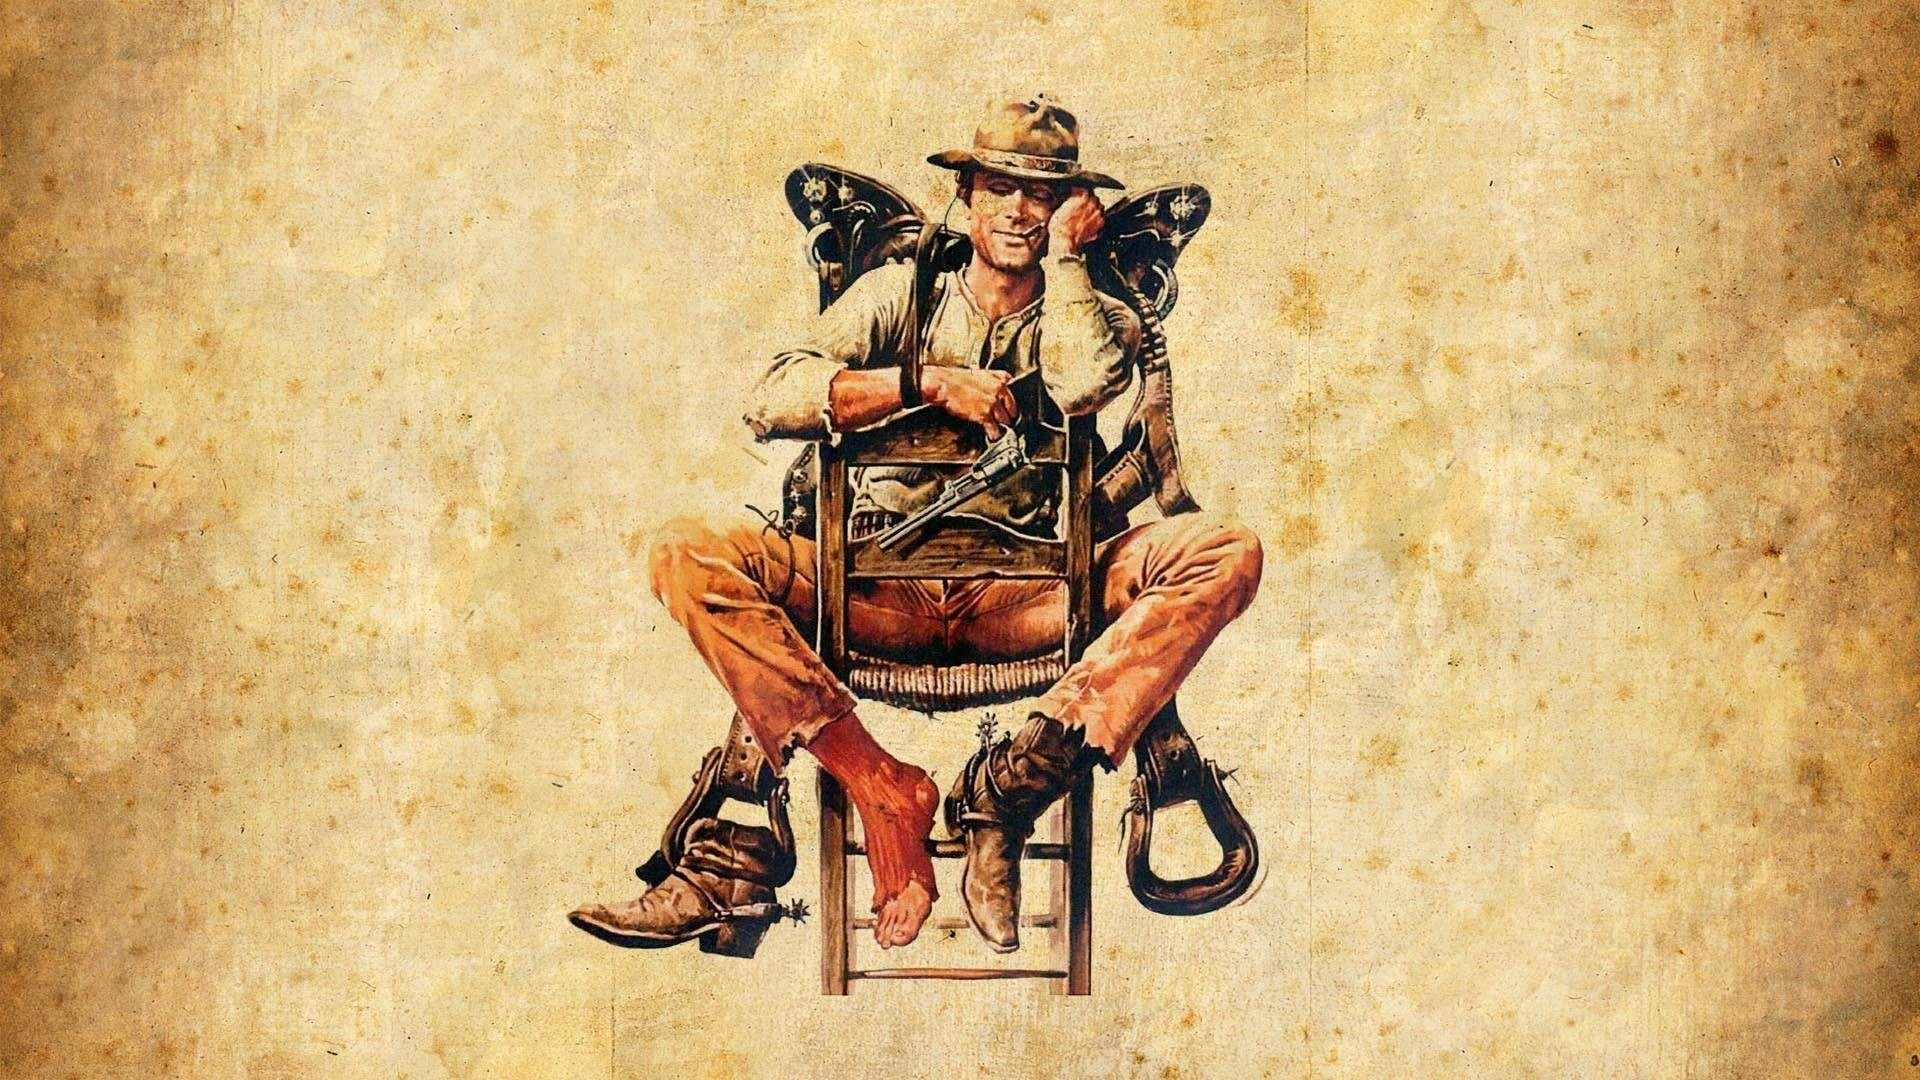 Western Wallpapers and Pictures Items Page of Polyvore 1920×800 Western  Wallpapers (46 Wallpapers